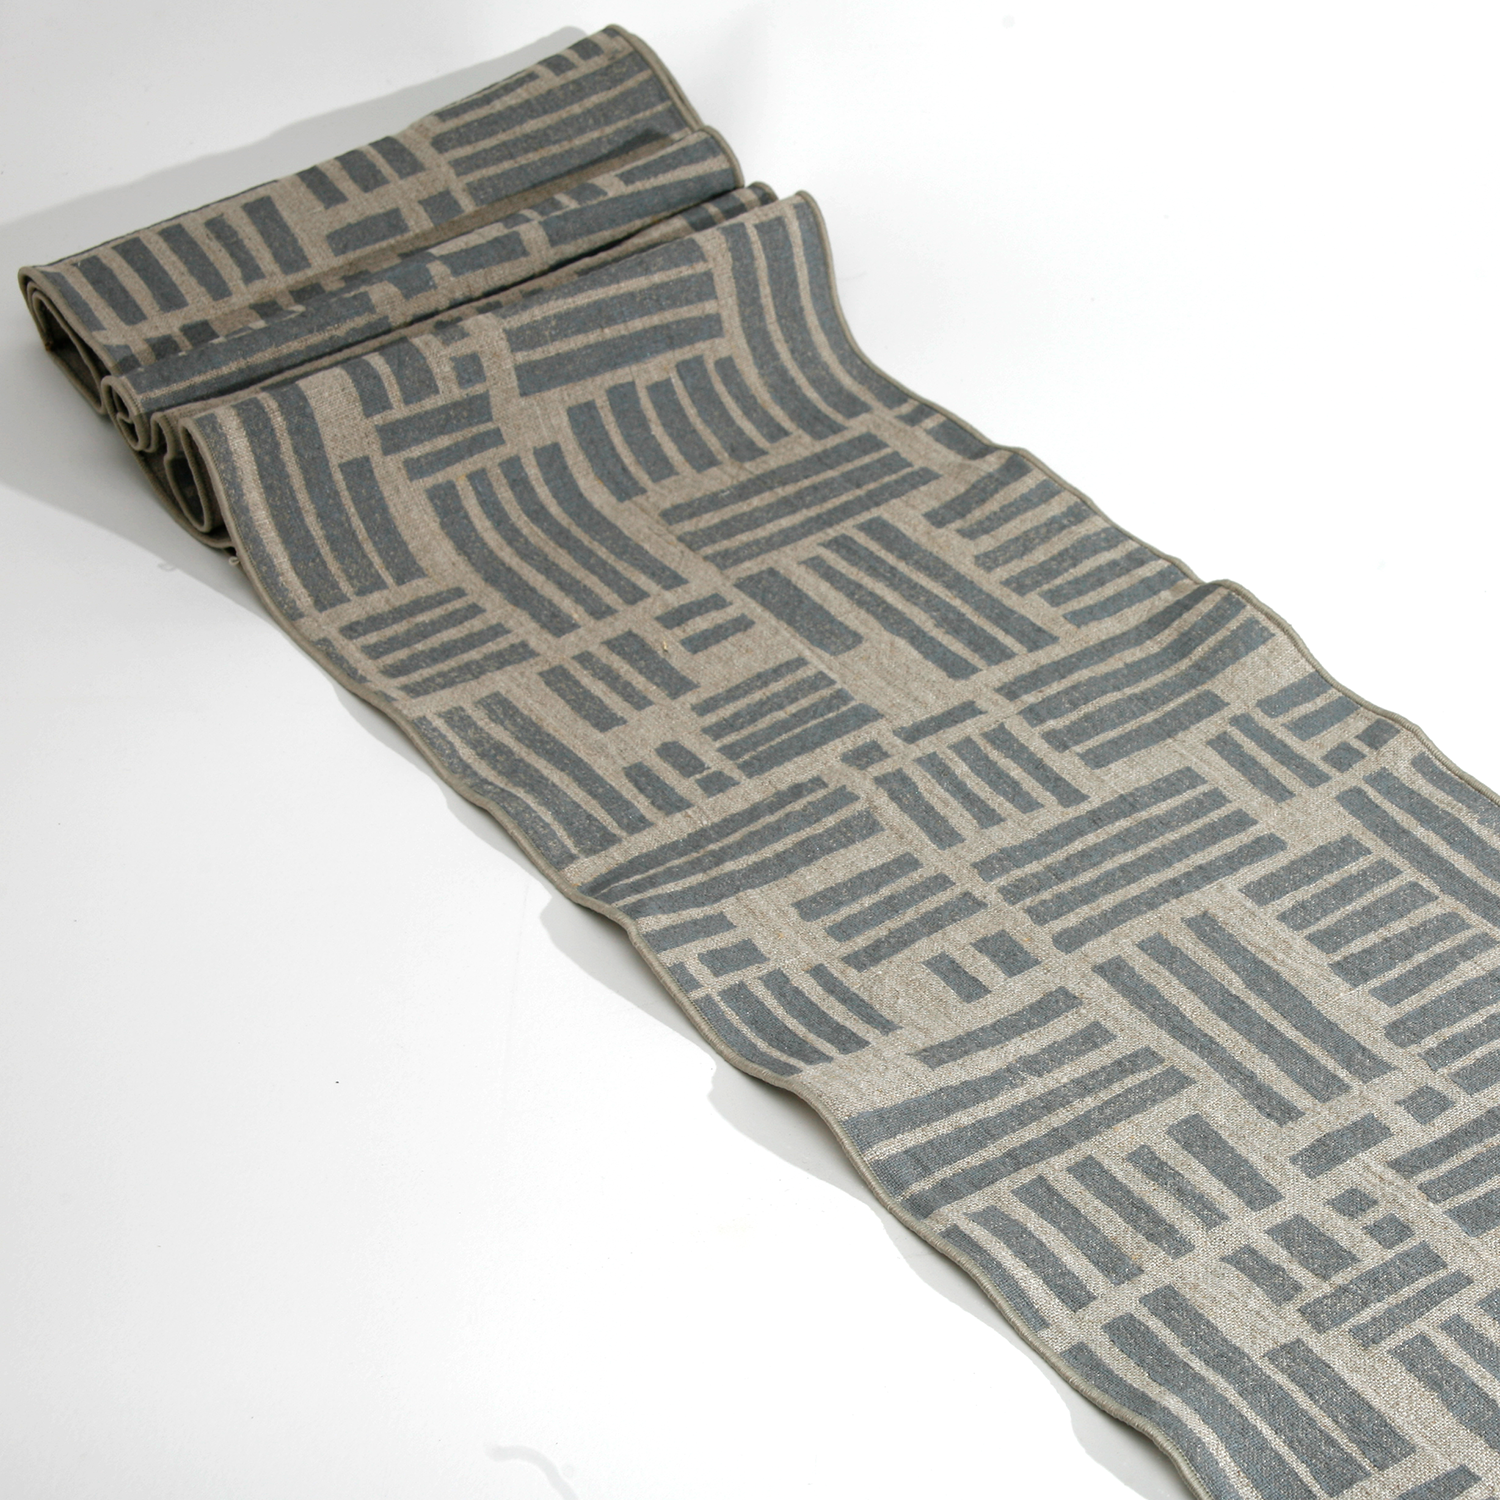 'Maze' Block Printed Linen Table Runner in Grey on Natural Linen